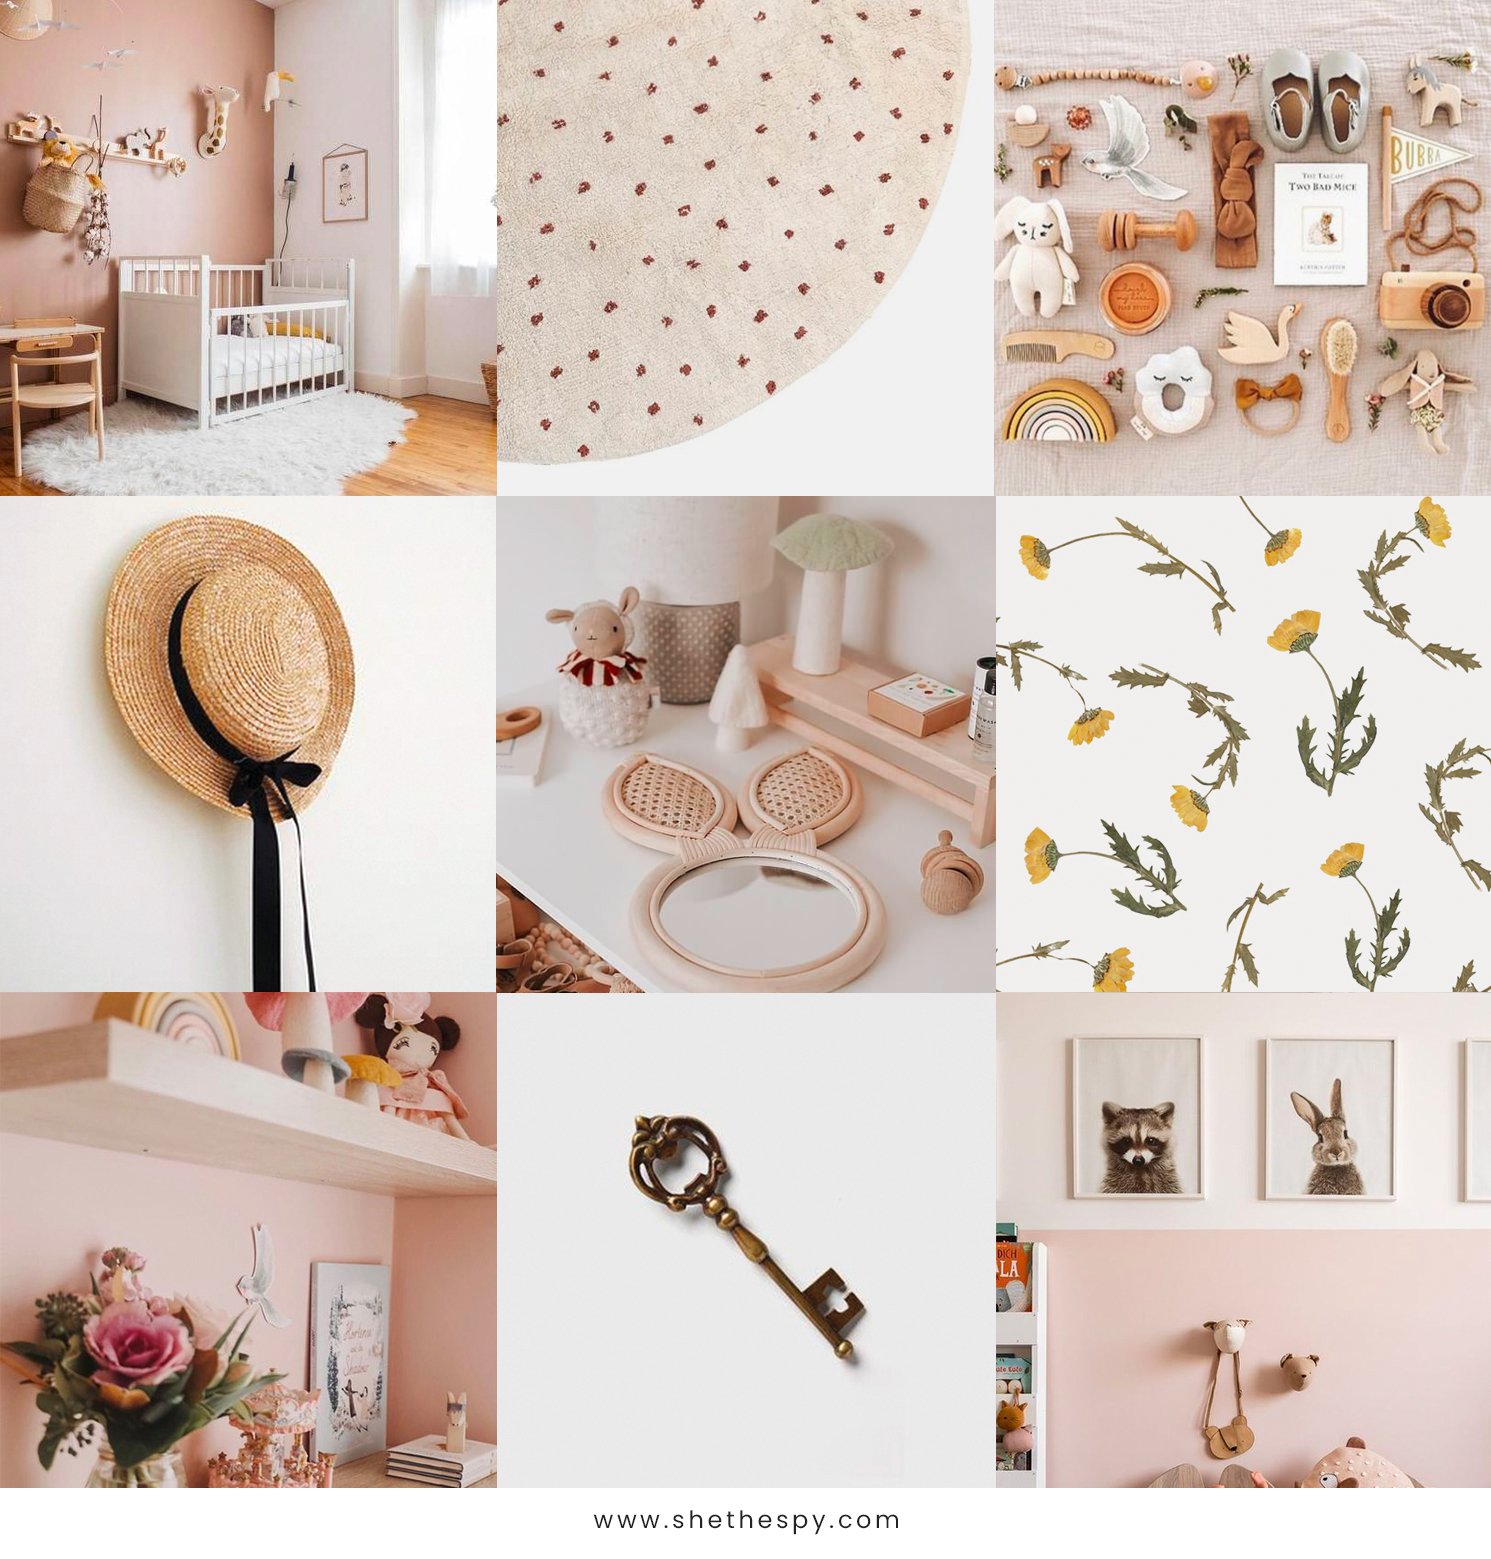 Mood board - Theme: The Secret GardenMuted peachy tones, delicate florals, secret wooden doors, dried flowers, antique keys, straw hats, pretty ribbons, wooden elephants, vintage fabrics and sweet dresses, little treasures, antique gold, a love for timeless classics, curiosity.